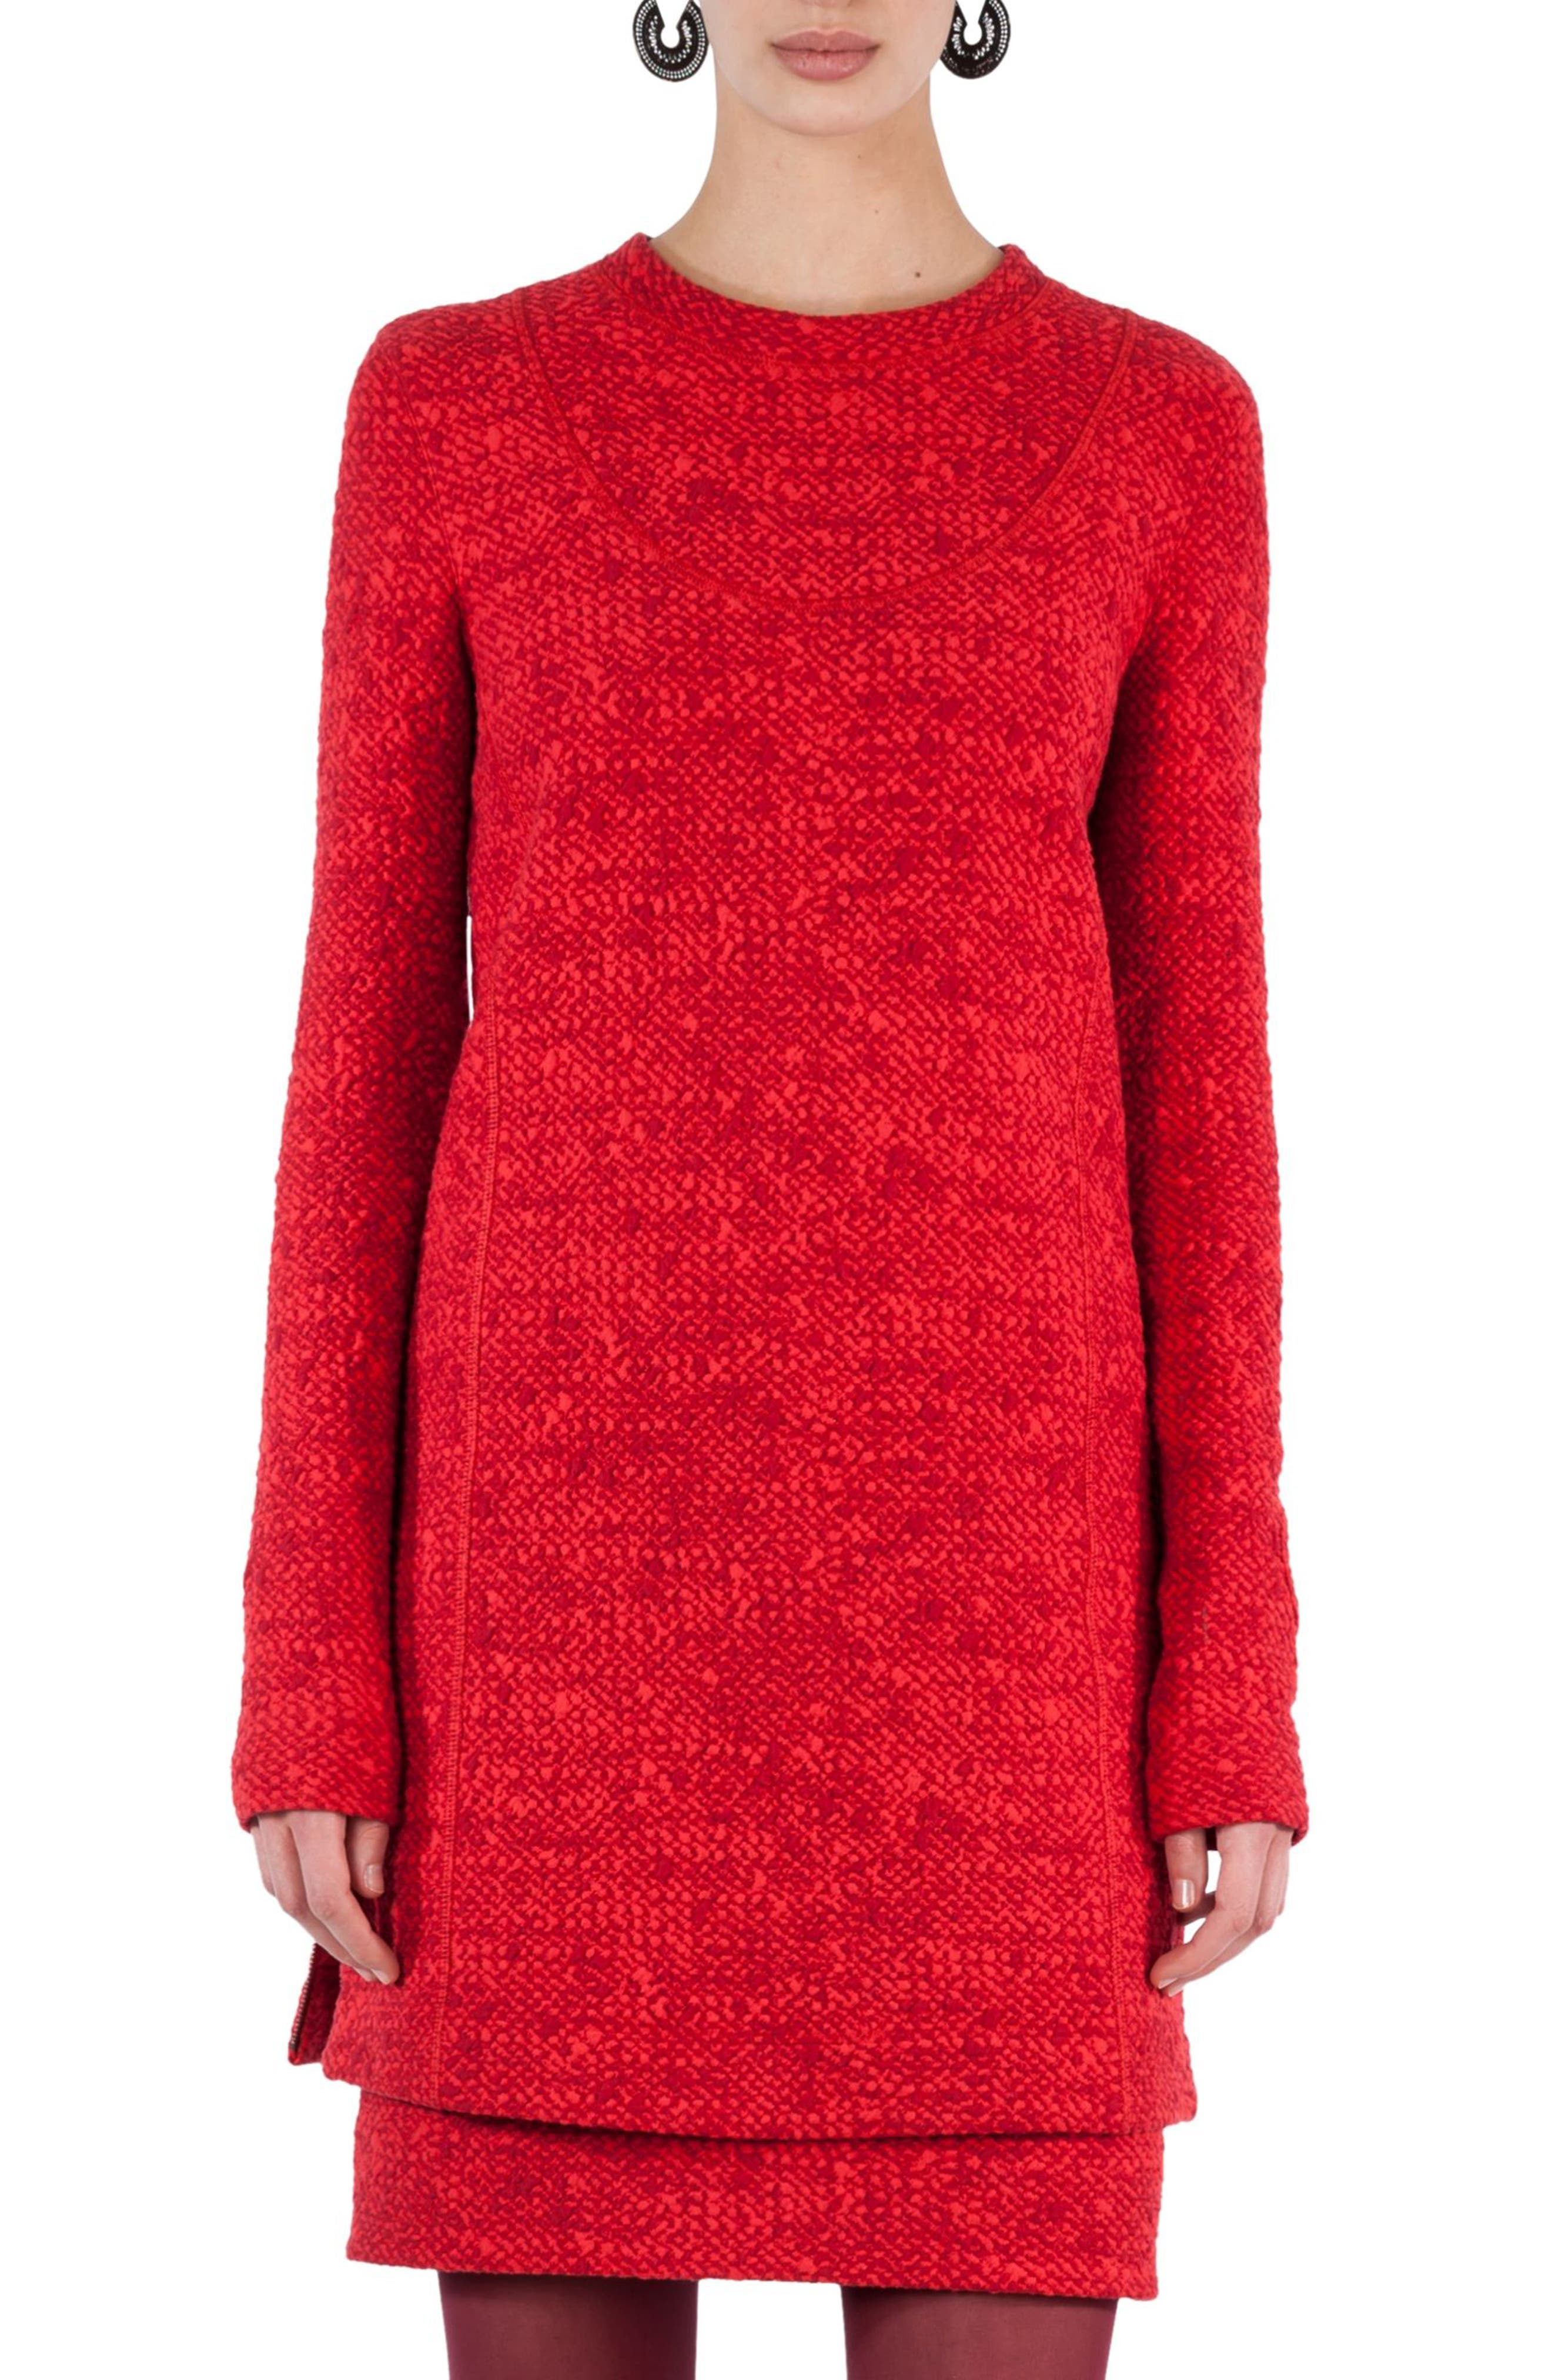 Mélange Knit Tunic Pullover,                         Main,                         color, Chili-Ruby